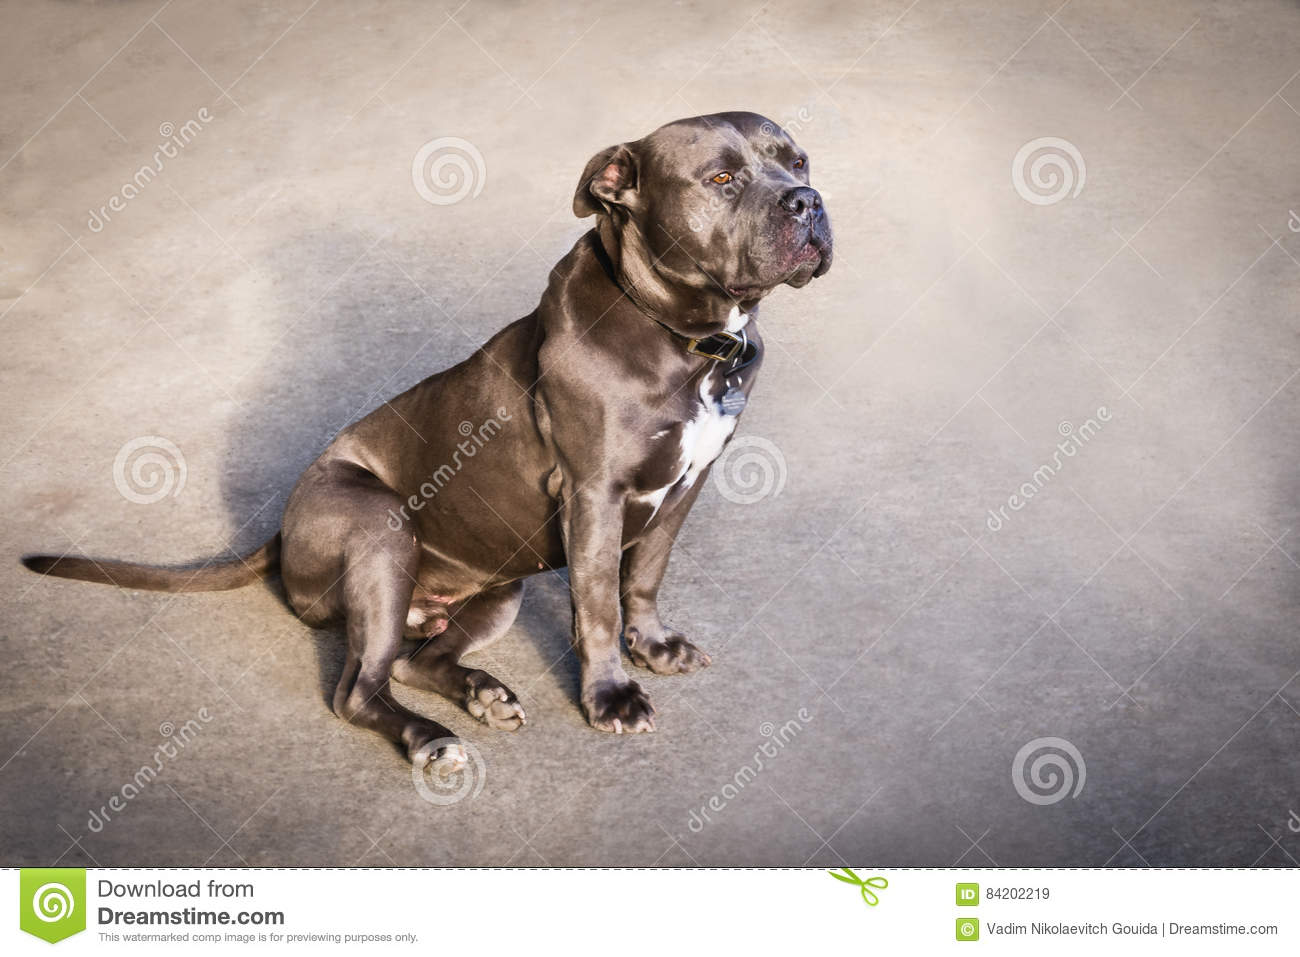 American Blue Nose Bully Dog Stock Image - Image of color